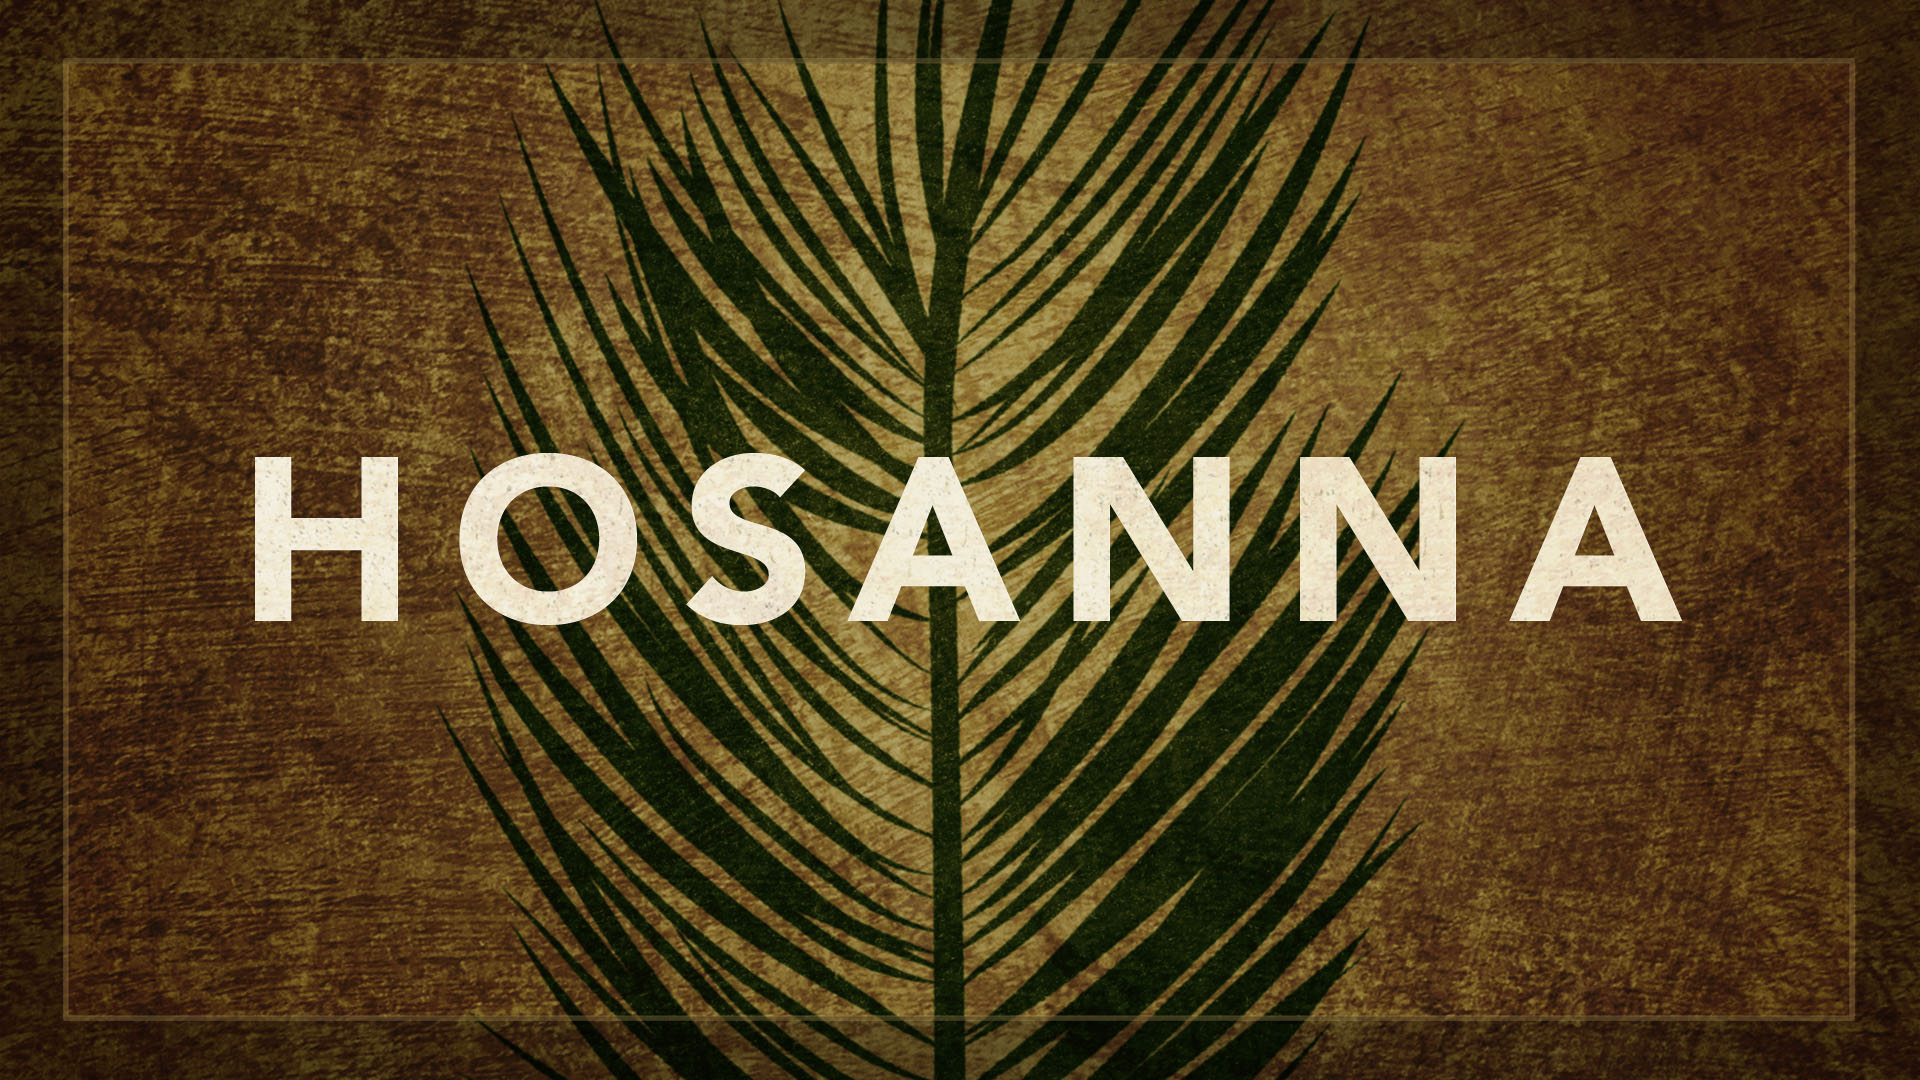 happy palm sunday wishes hosanna hd image wallpaper